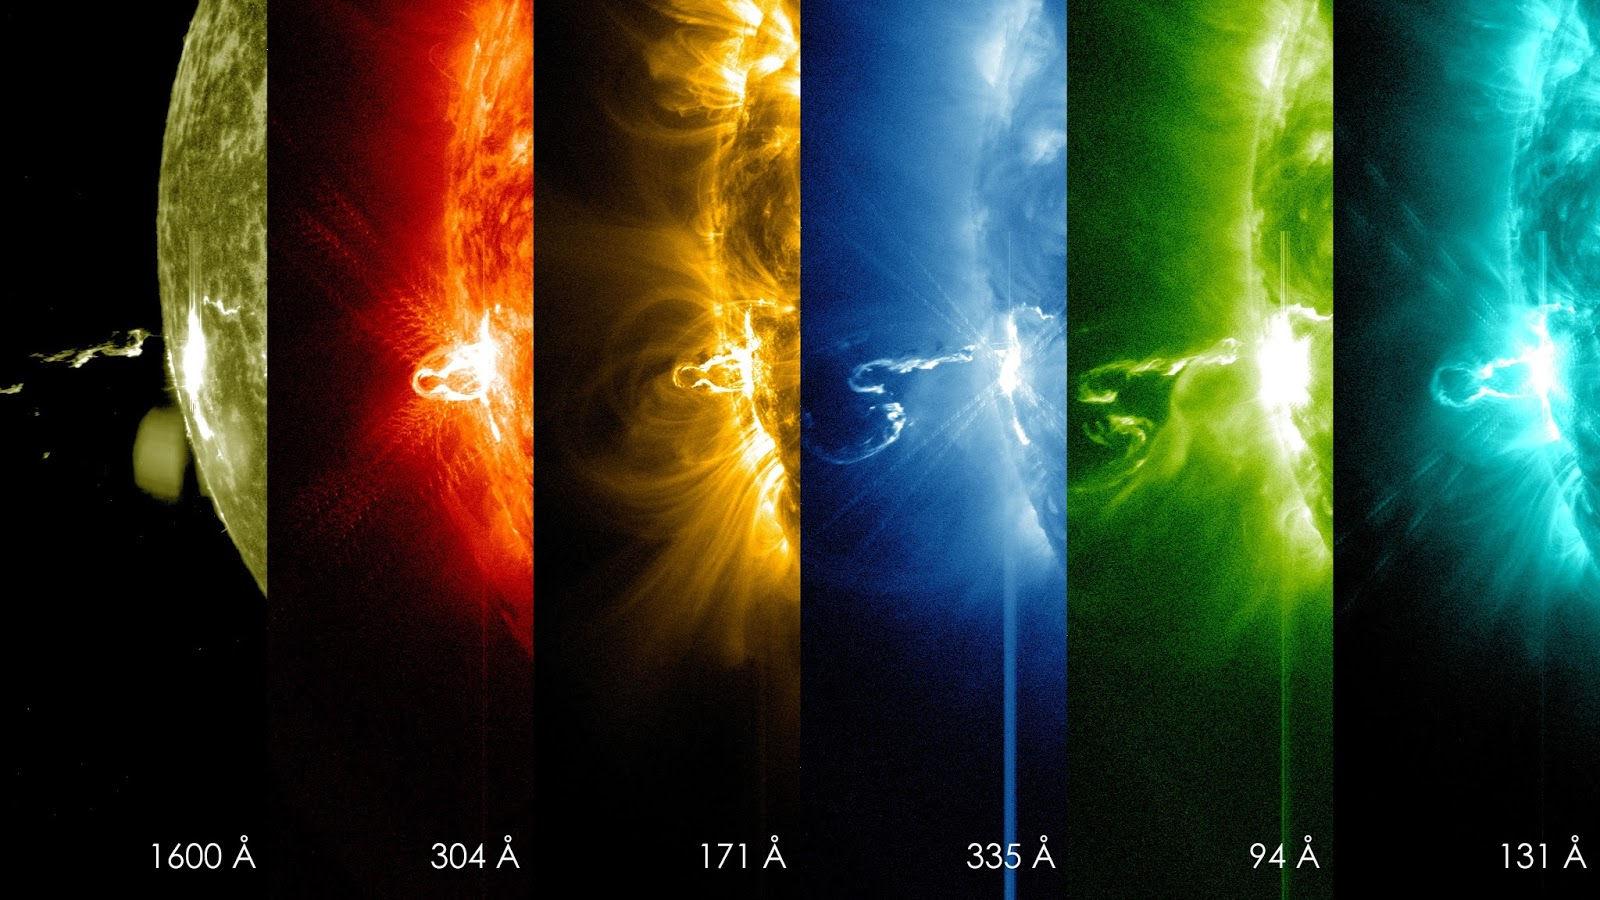 NASA's SDO Shows Images of Significant Solar Flare    The Sun emitted a significant solar flare, peaking at 7:49 p.m. EST on February 24, 2014. NASA's Solar Dynamics Observatory, which keeps a constant watch on the Sun, captured images of the event.  Solar flares are powerful bursts of radiation, appearing as giant flashes of light in the SDO images. Harmful radiation from a flare cannot pass through Earth's atmosphere to physically affect humans on the ground, however -- when intense enough -- they can disturb the atmosphere in the layer where GPS and communications signals travel.  This flare is classified as an X4.9-class flare. X-class denotes the most intense flares, while the number provides more information about its strength. An X2 is twice as intense as an X1, an X3 is three times as intense, etc.  Image Credit: SDO/NASA Explanation from: http://www.nasa.gov/content/goddard/nasas-sdo-shows-images-of-significant-solar-flare/index.html